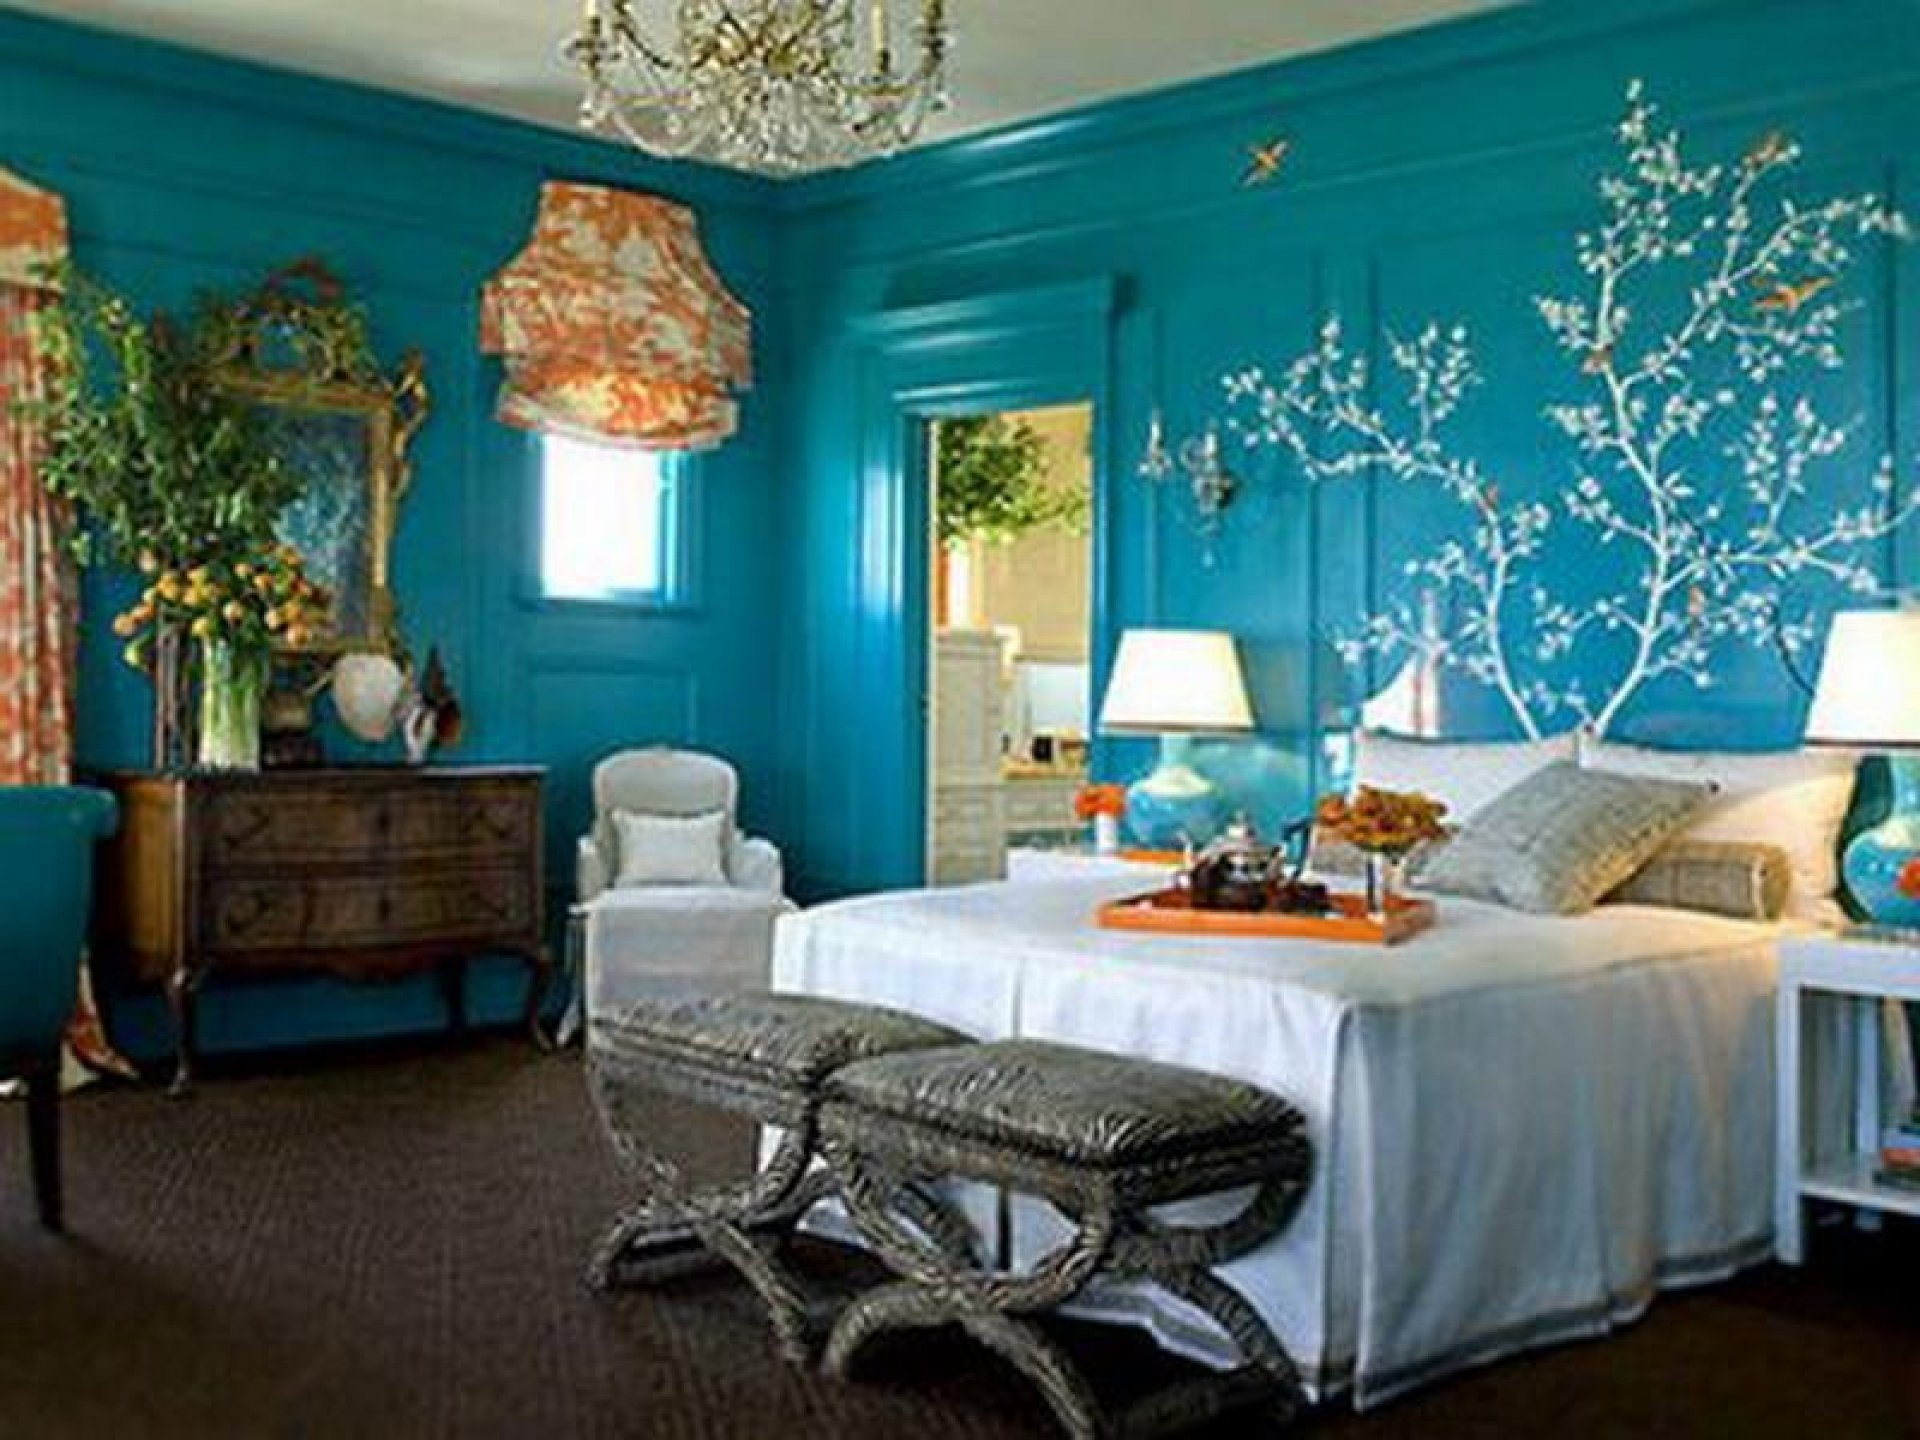 10 Trendy Bedroom Ideas For Young Women bedroom bedroom decor ideas fascinating blue for and colors young 2021